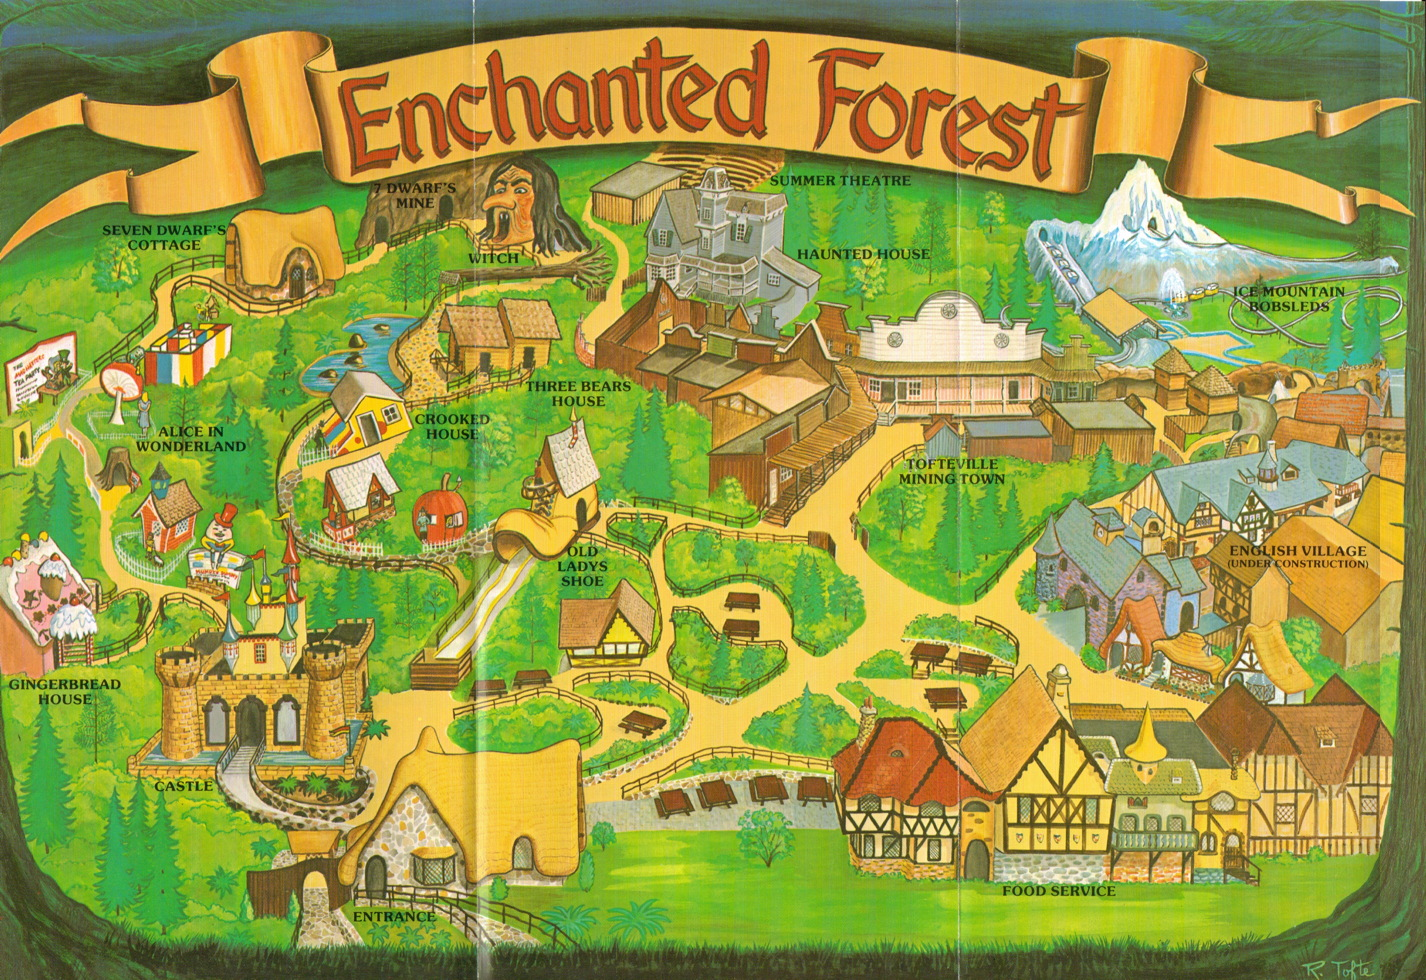 my visit to a theme park the enchanted kingdom We went to enchanted kingdom aka one of the best if not the best theme park in the philippines last april 30, 2016  we were lucky cause there was a free concert featuring the juans, climax, chris .